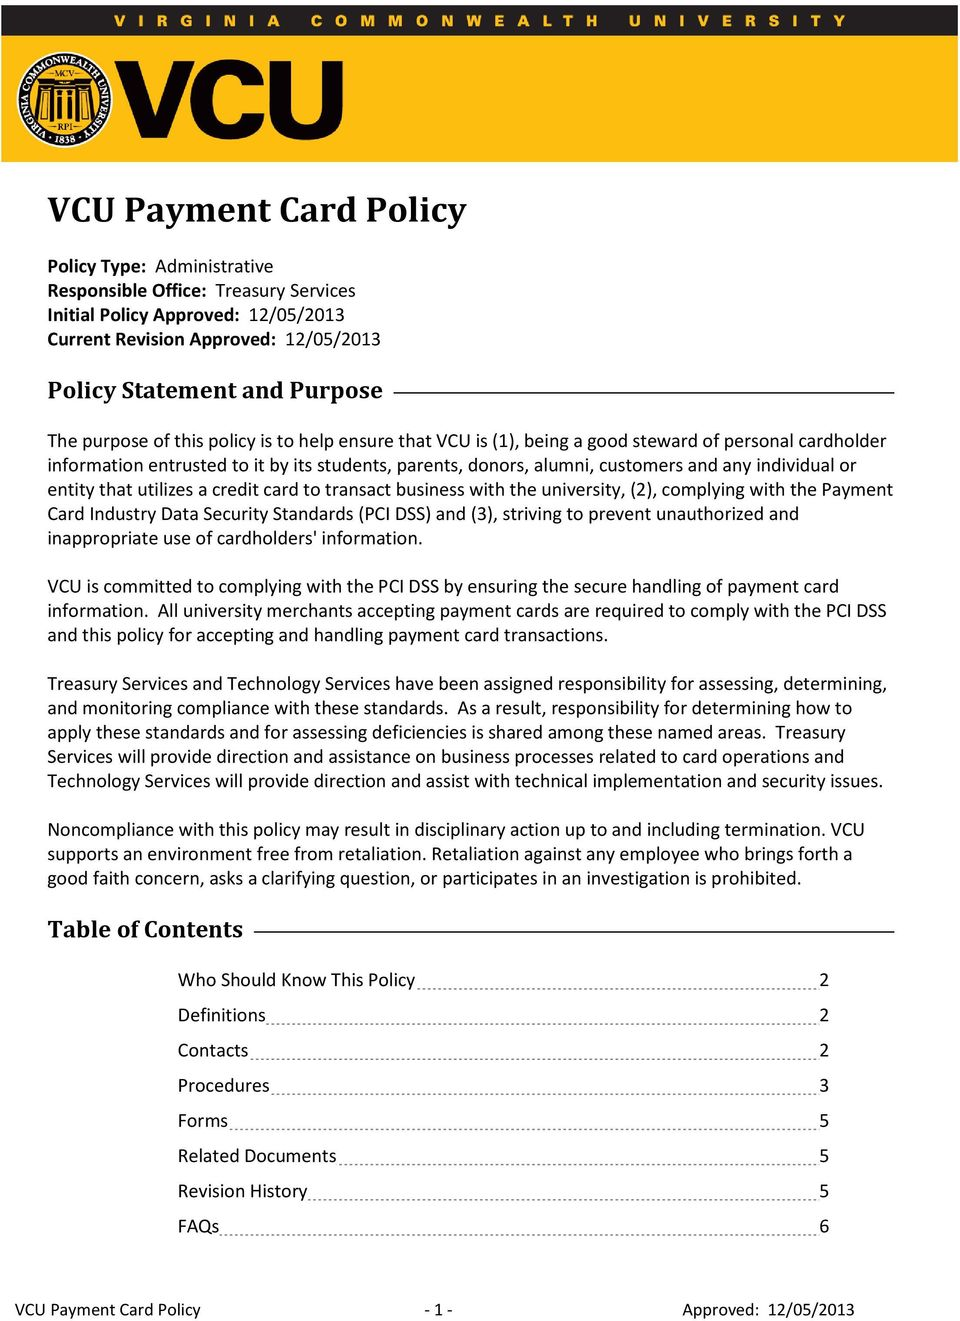 a credit card t transact business with the university, (2), cmplying with the Payment Card Industry Data Security Standards (PCI DSS) and (3), striving t prevent unauthrized and inapprpriate use f